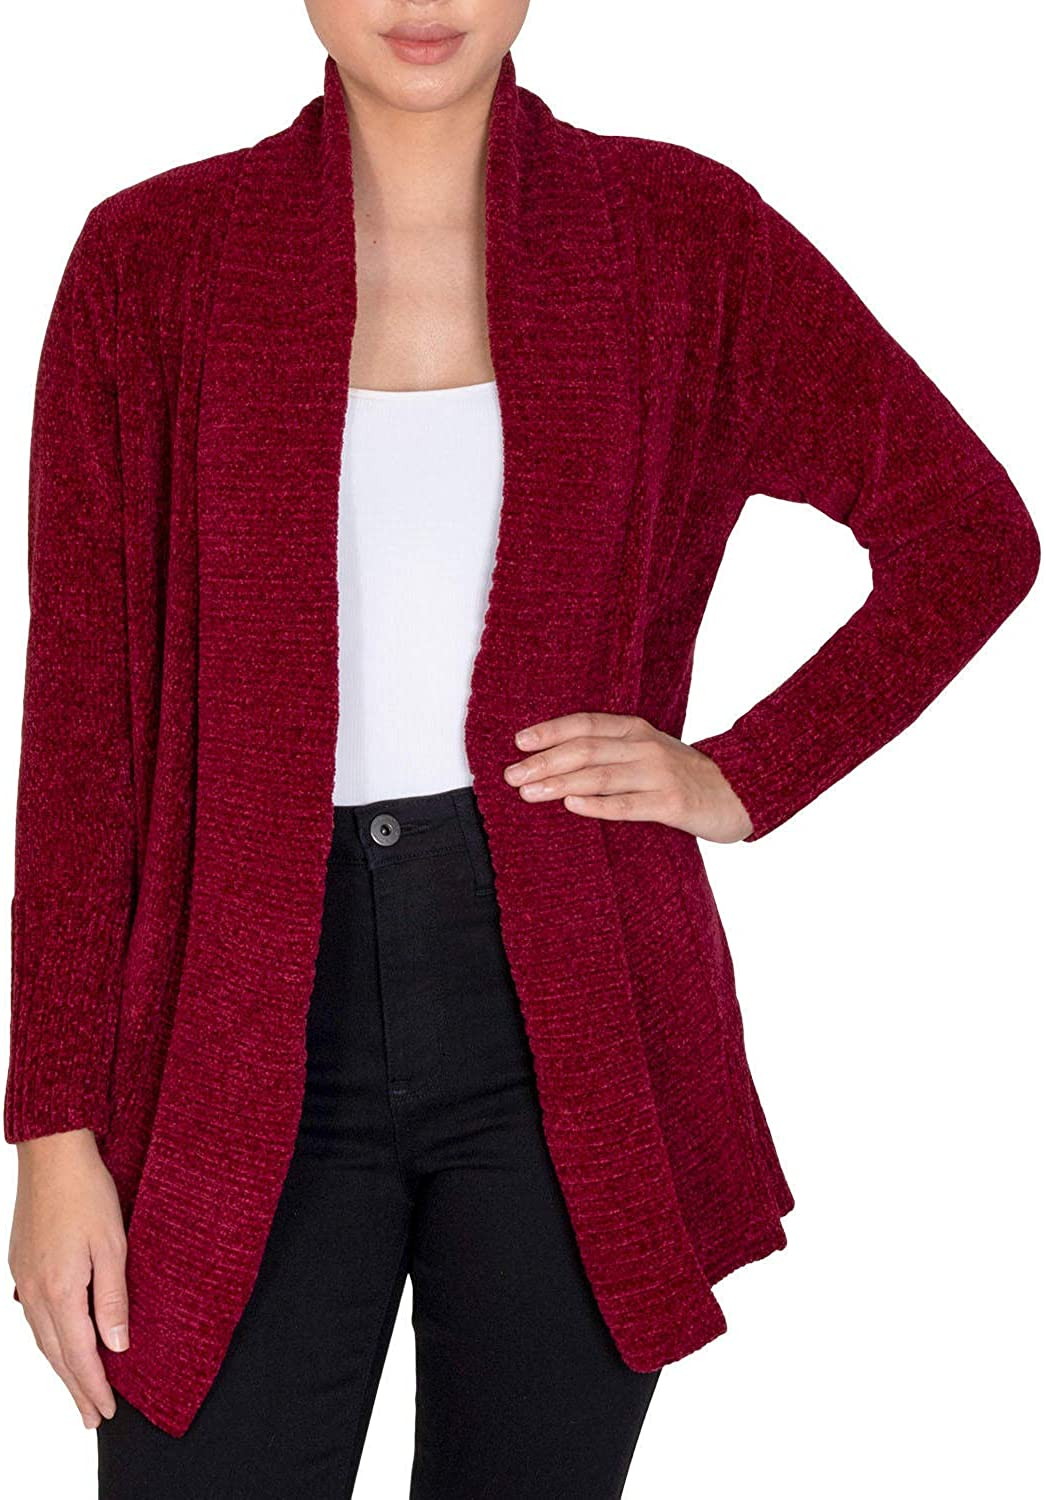 7 JEANS Women's Ranking TOP1 Chenille Open-Front Free shipping / New Cardigan Port Tawny M